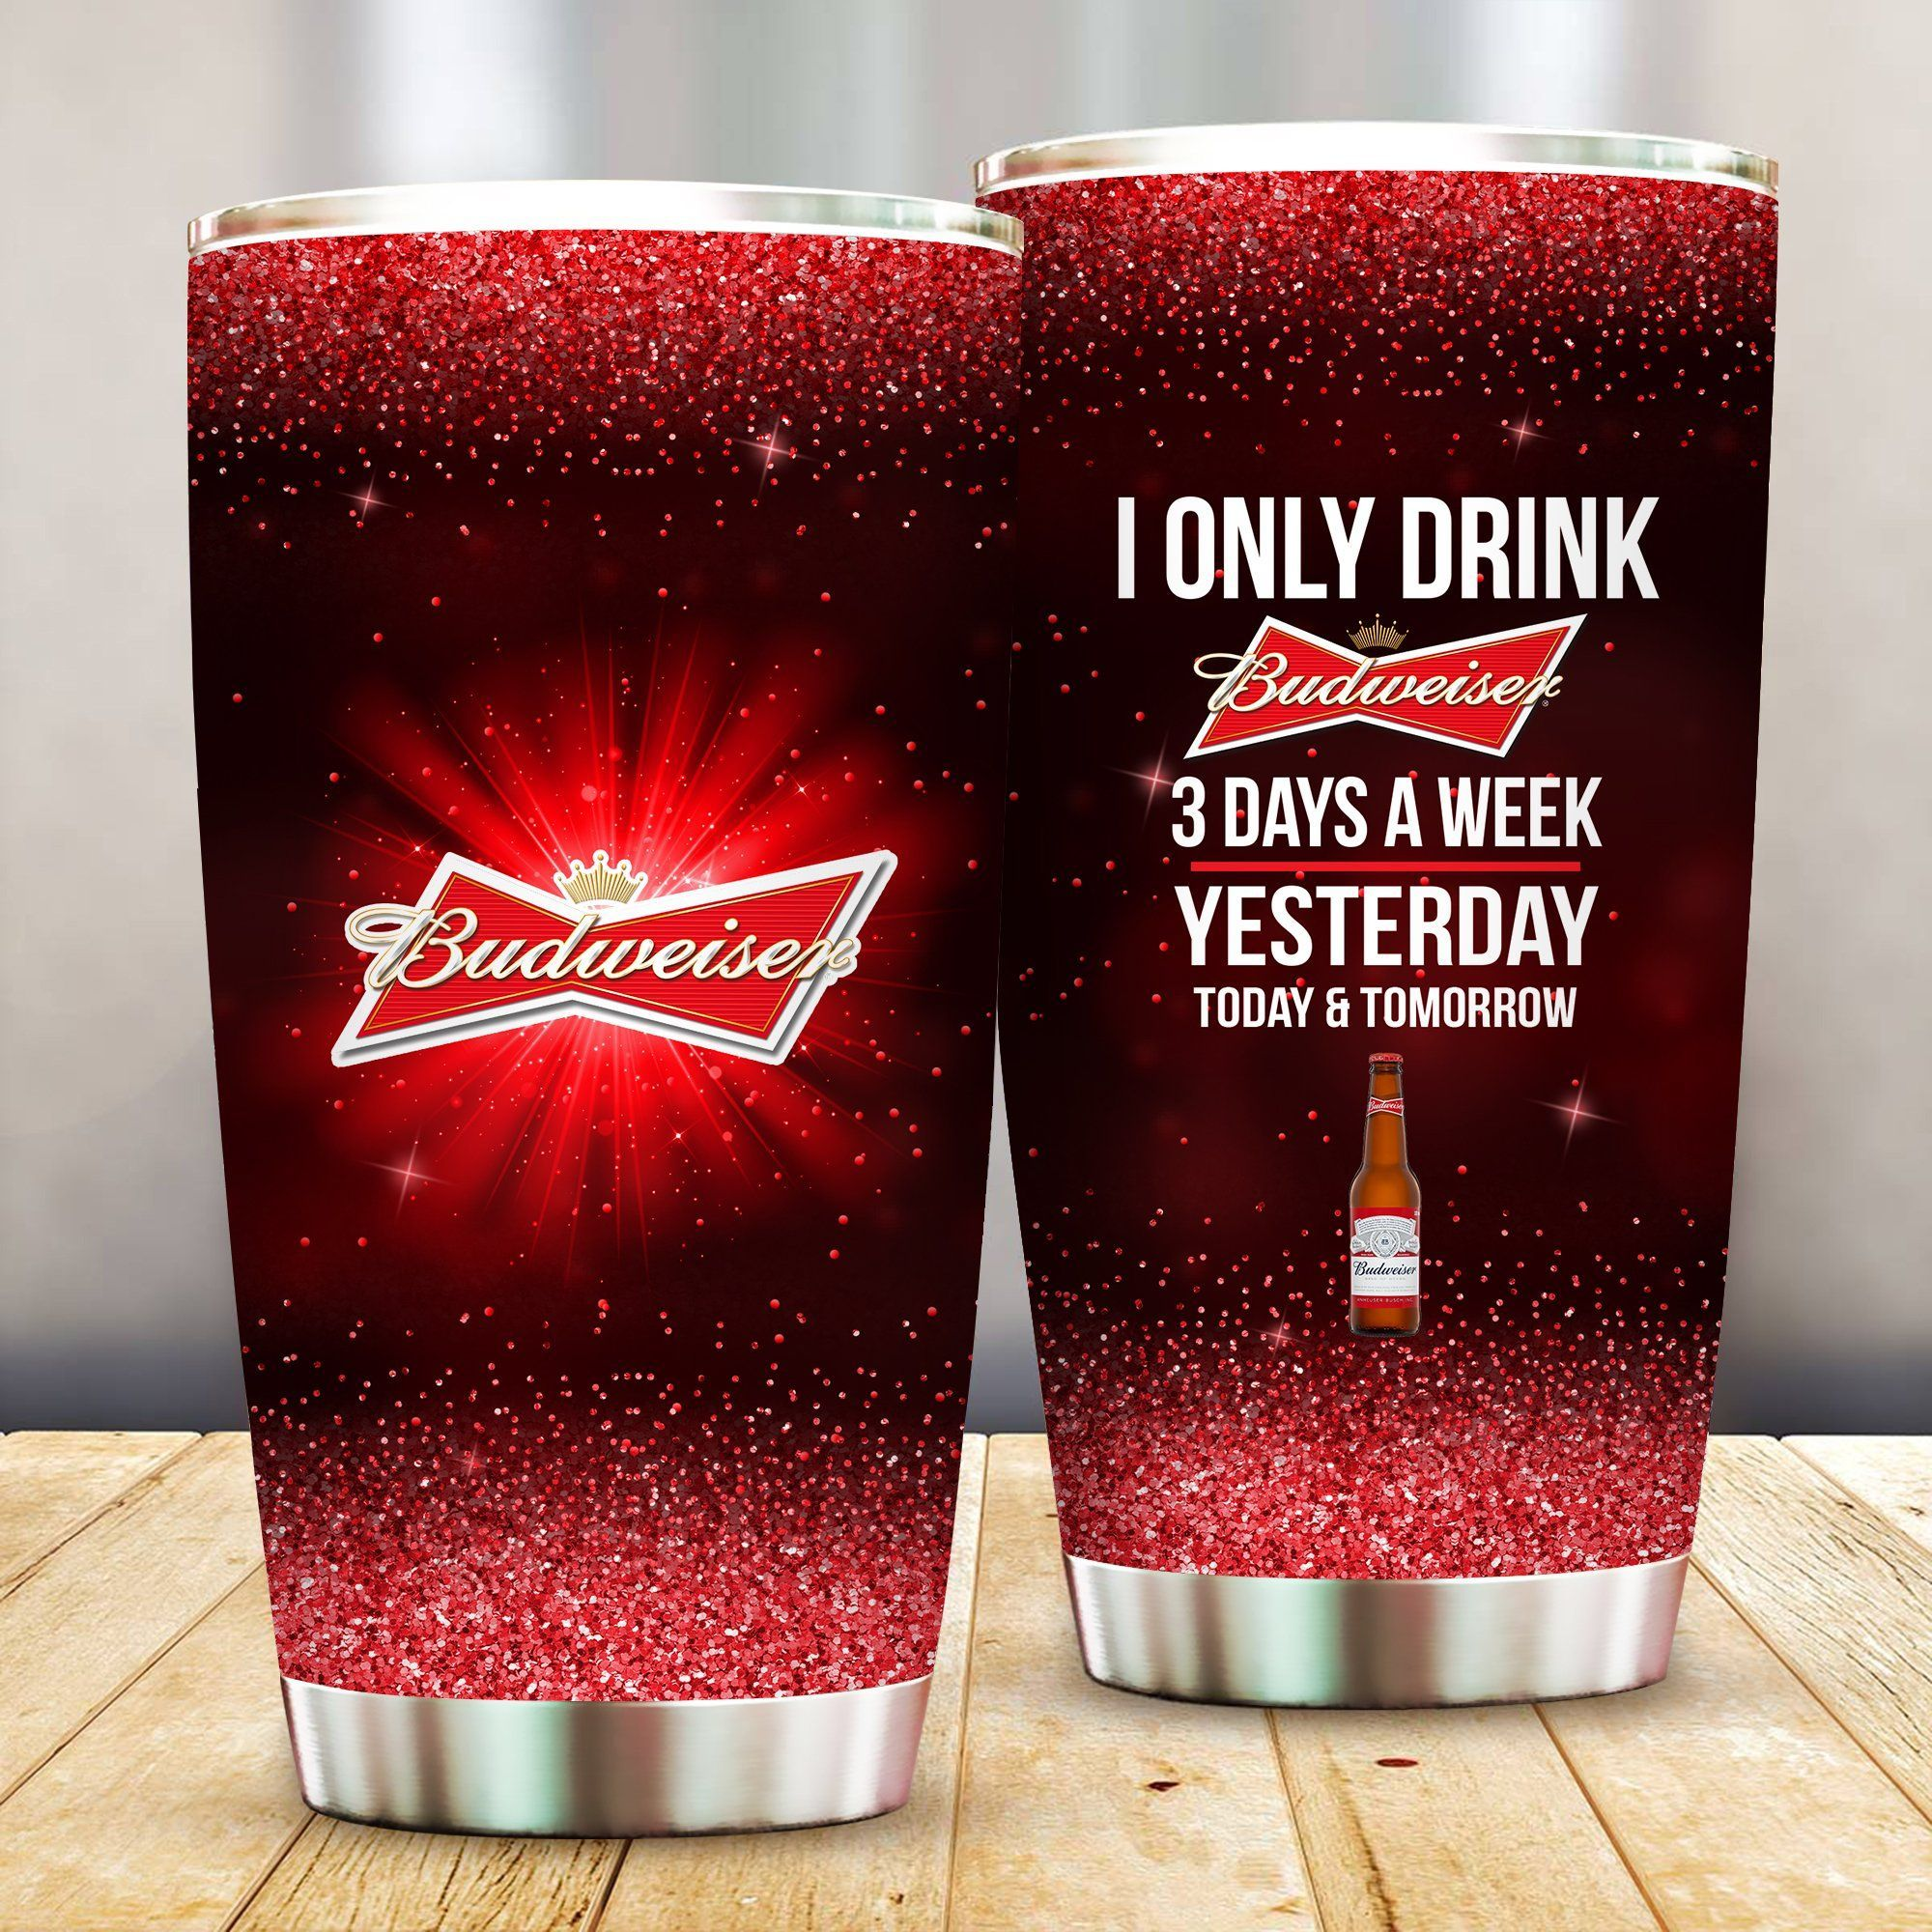 I Only Drink Budweiser 3 Days A Week Yesterday Today and Tomorrow - Funny Customized Tumbler Cup Unisex Tshirt